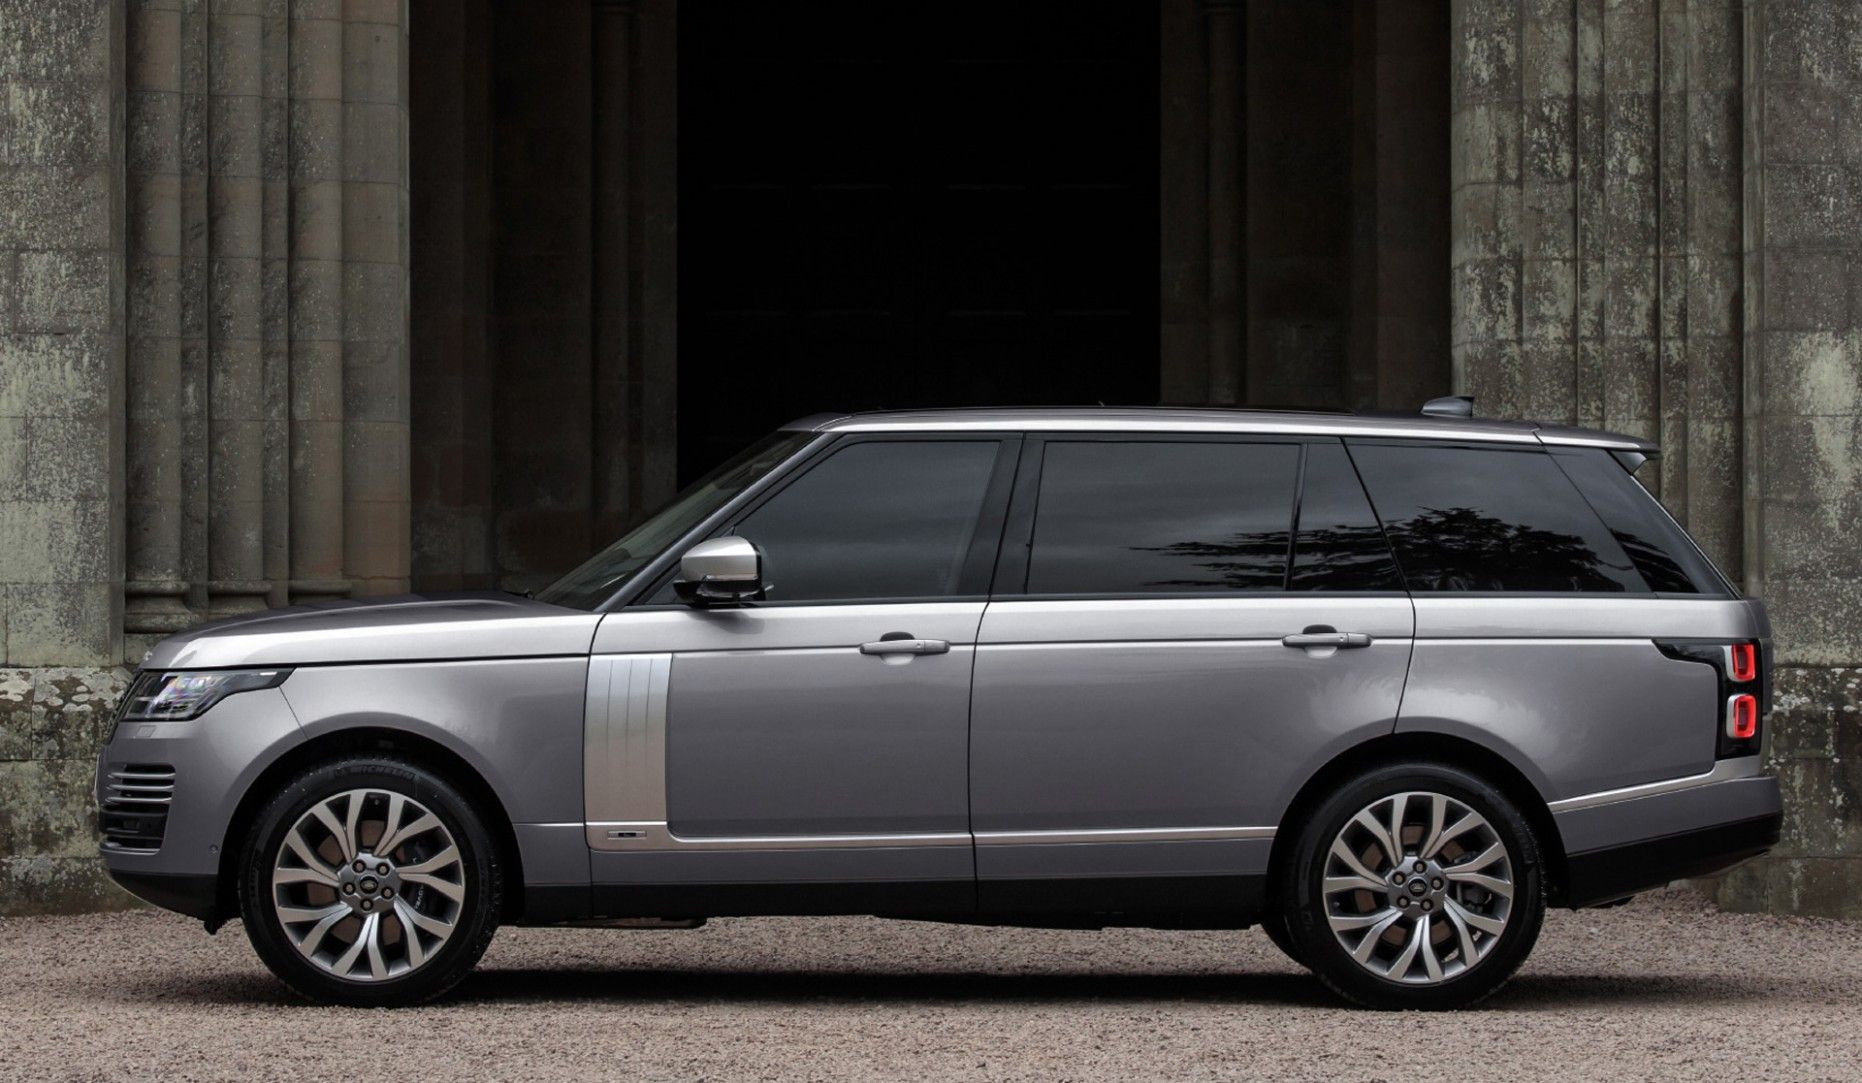 2021 Range Rover Sport Redesign And Concept Range Rover Supercharged Range Rover The New Range Rover